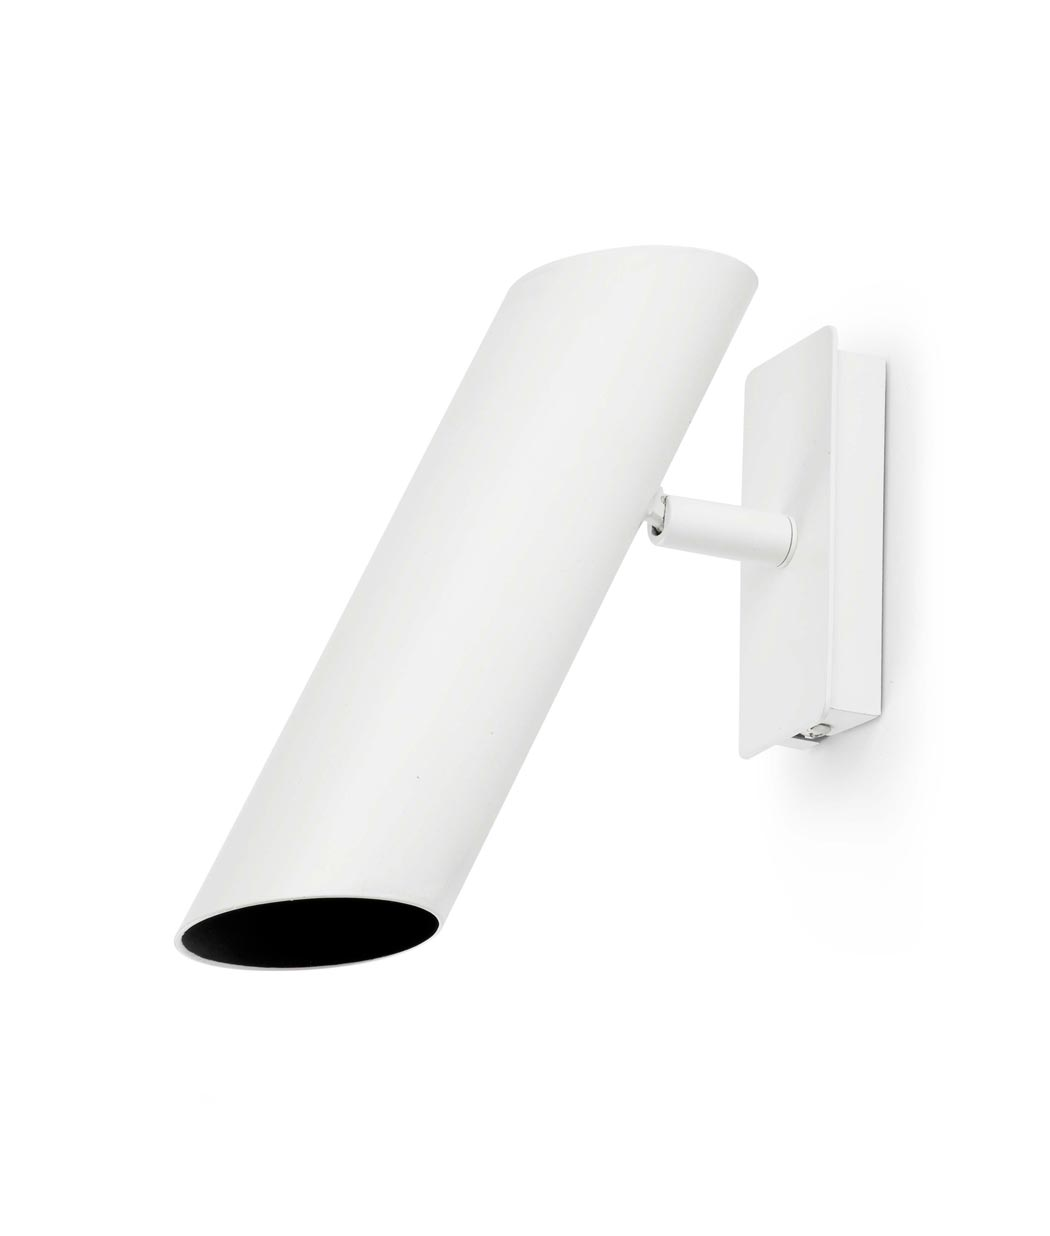 Aplique de pared blanco 1 luz LINK